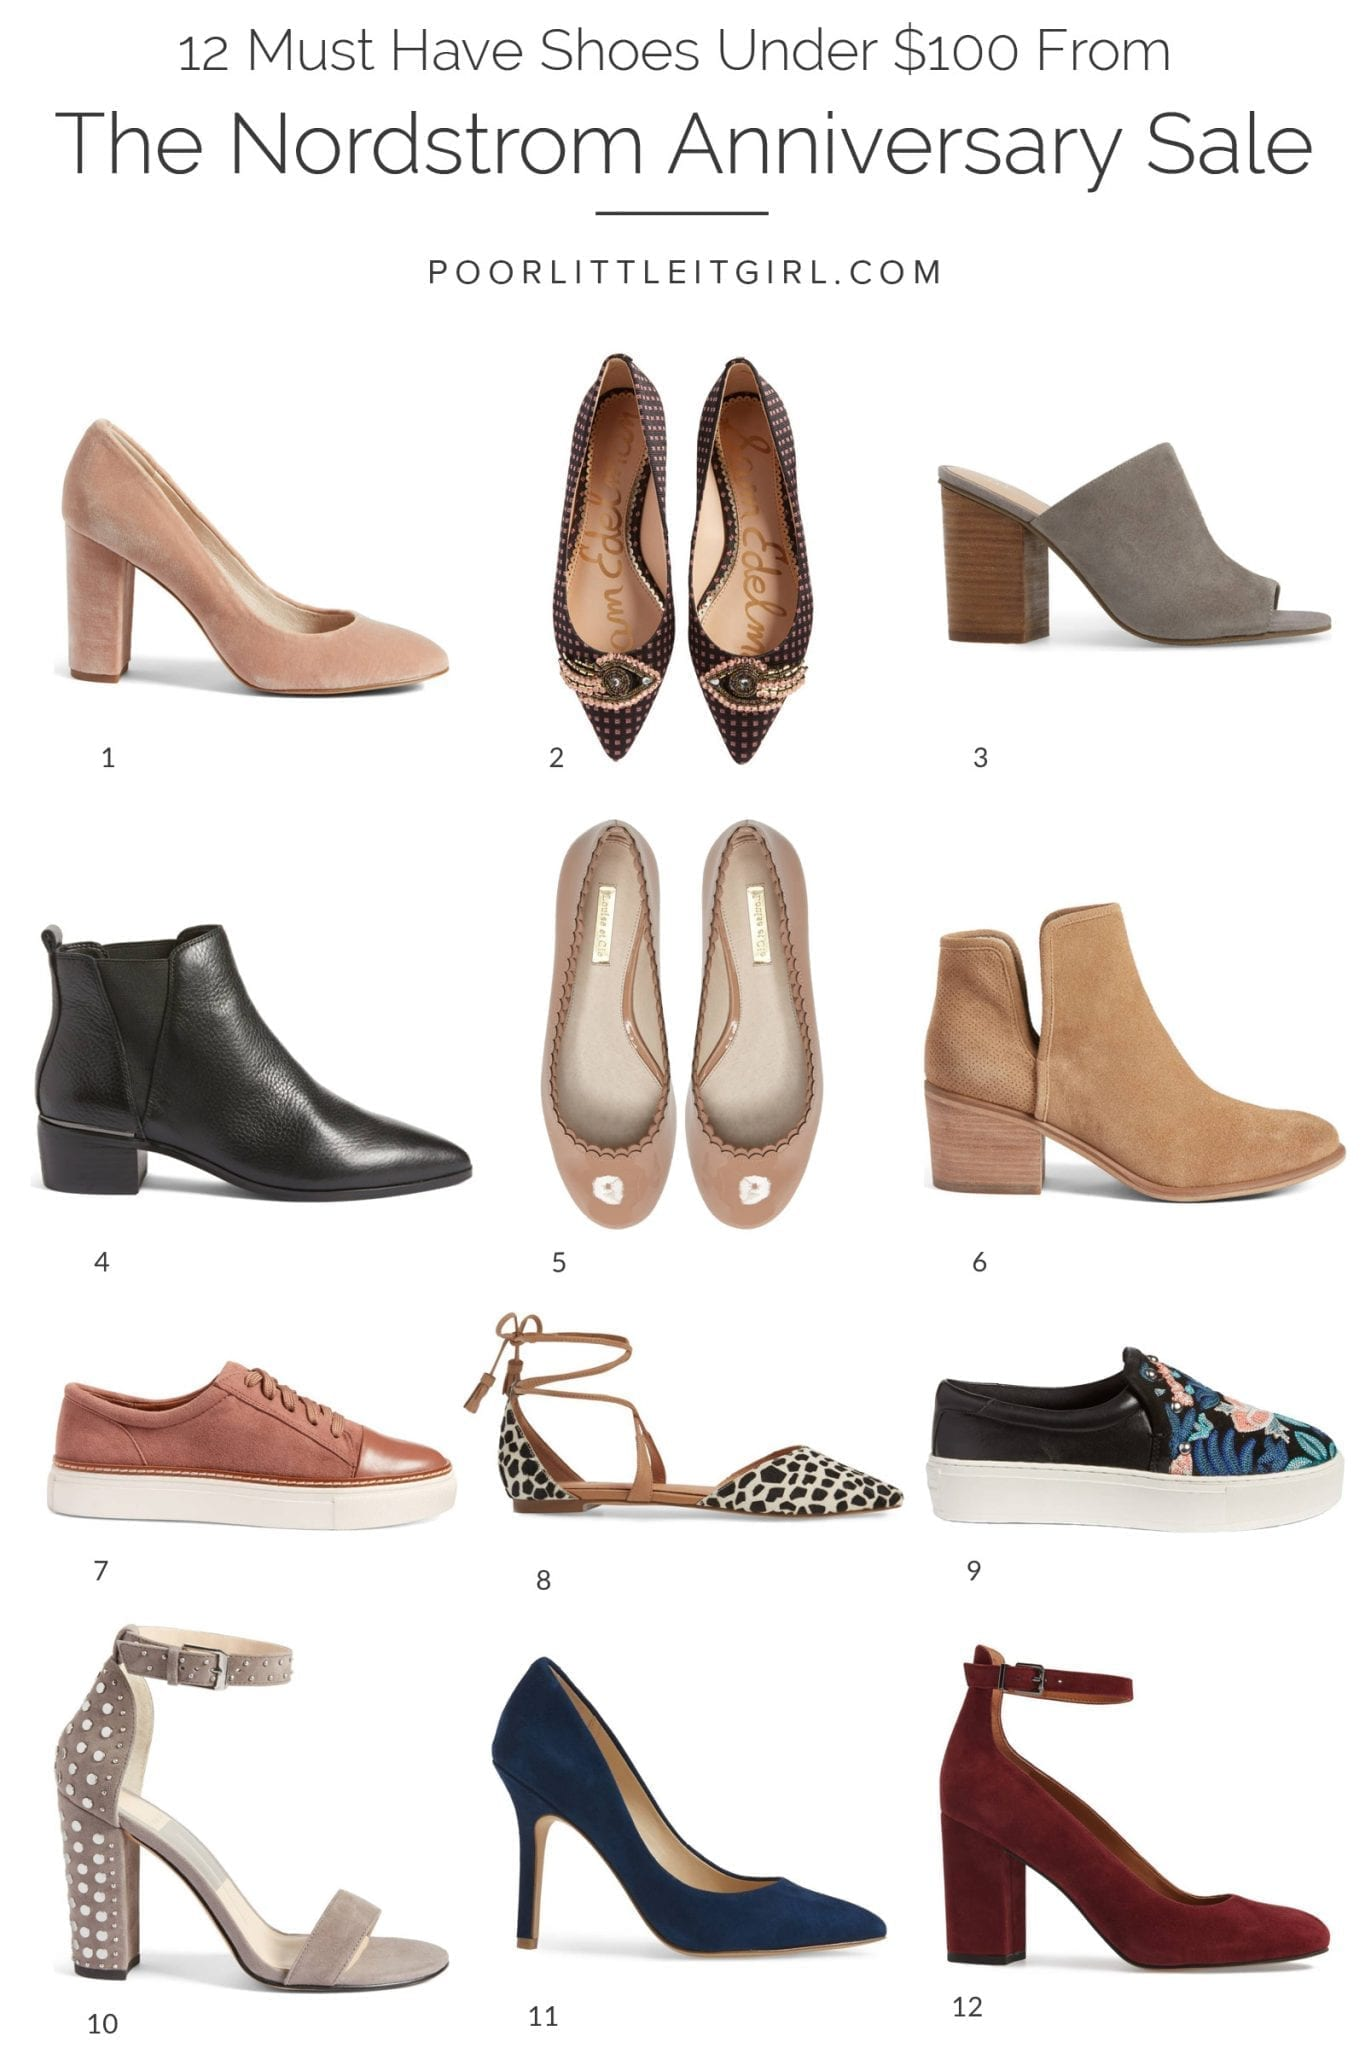 06b9d76c6b 12 Nordstrom Anniversary Sale Shoes Under $100 - Poor Little It Girl